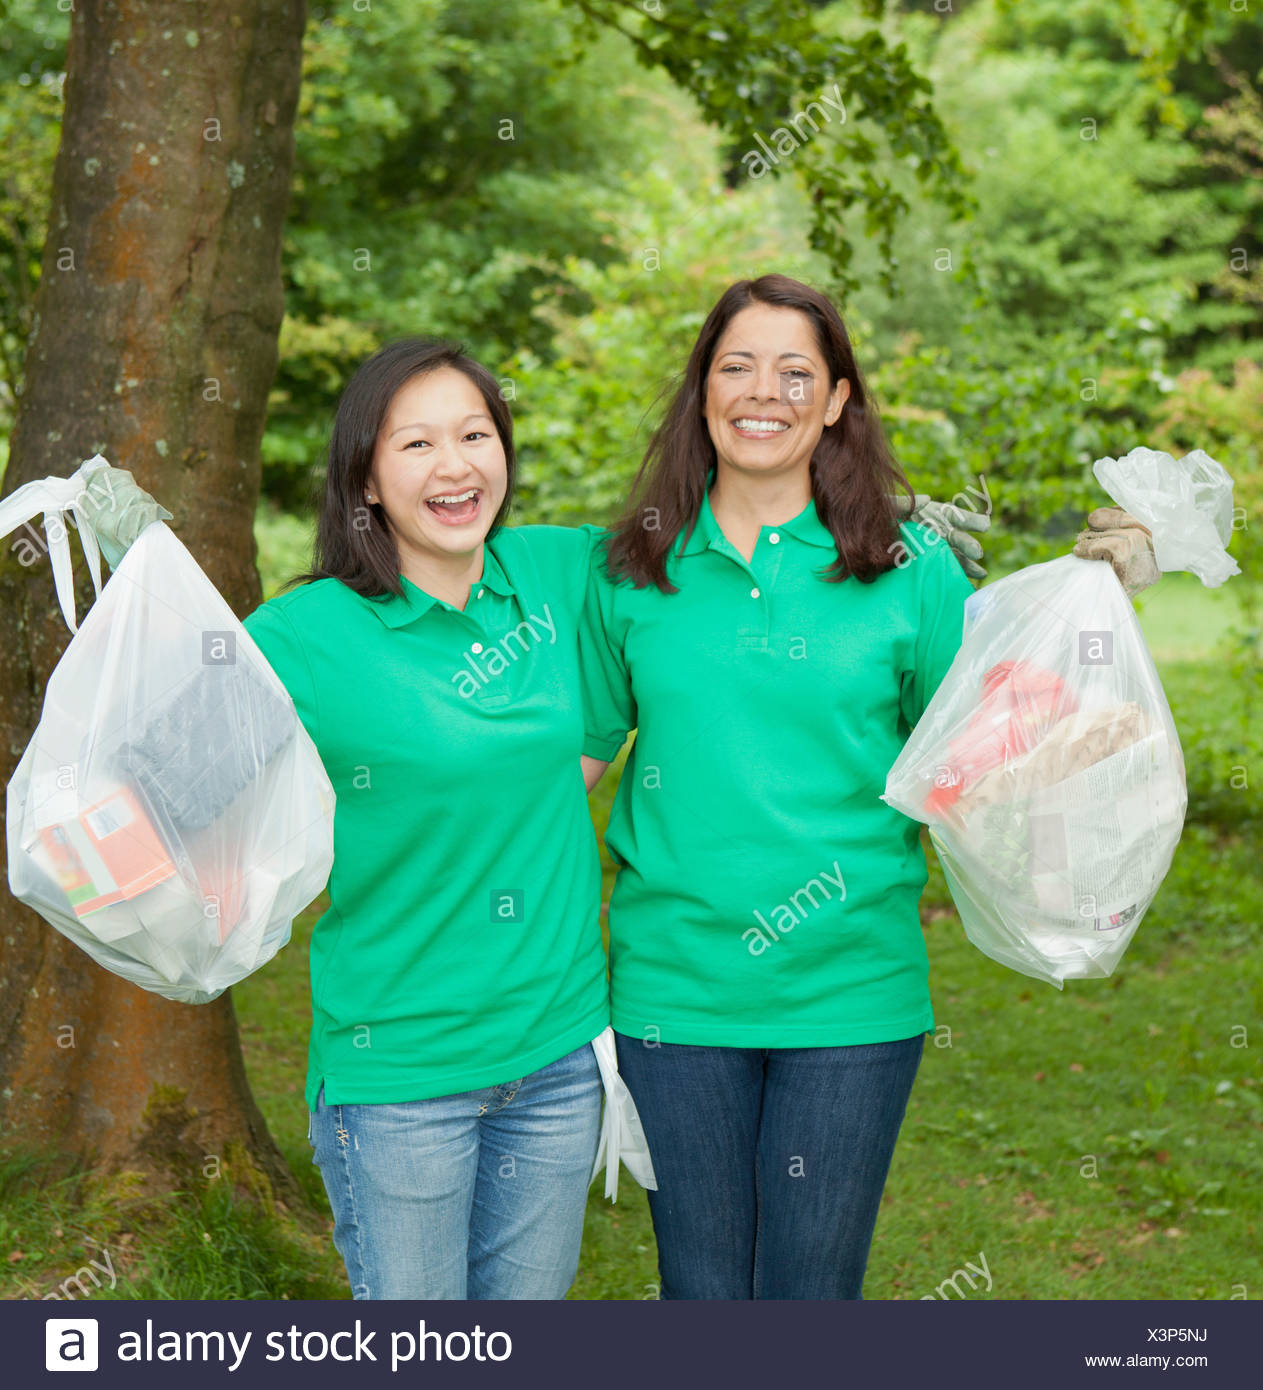 Gardeners picking up trash in park - Stock Image